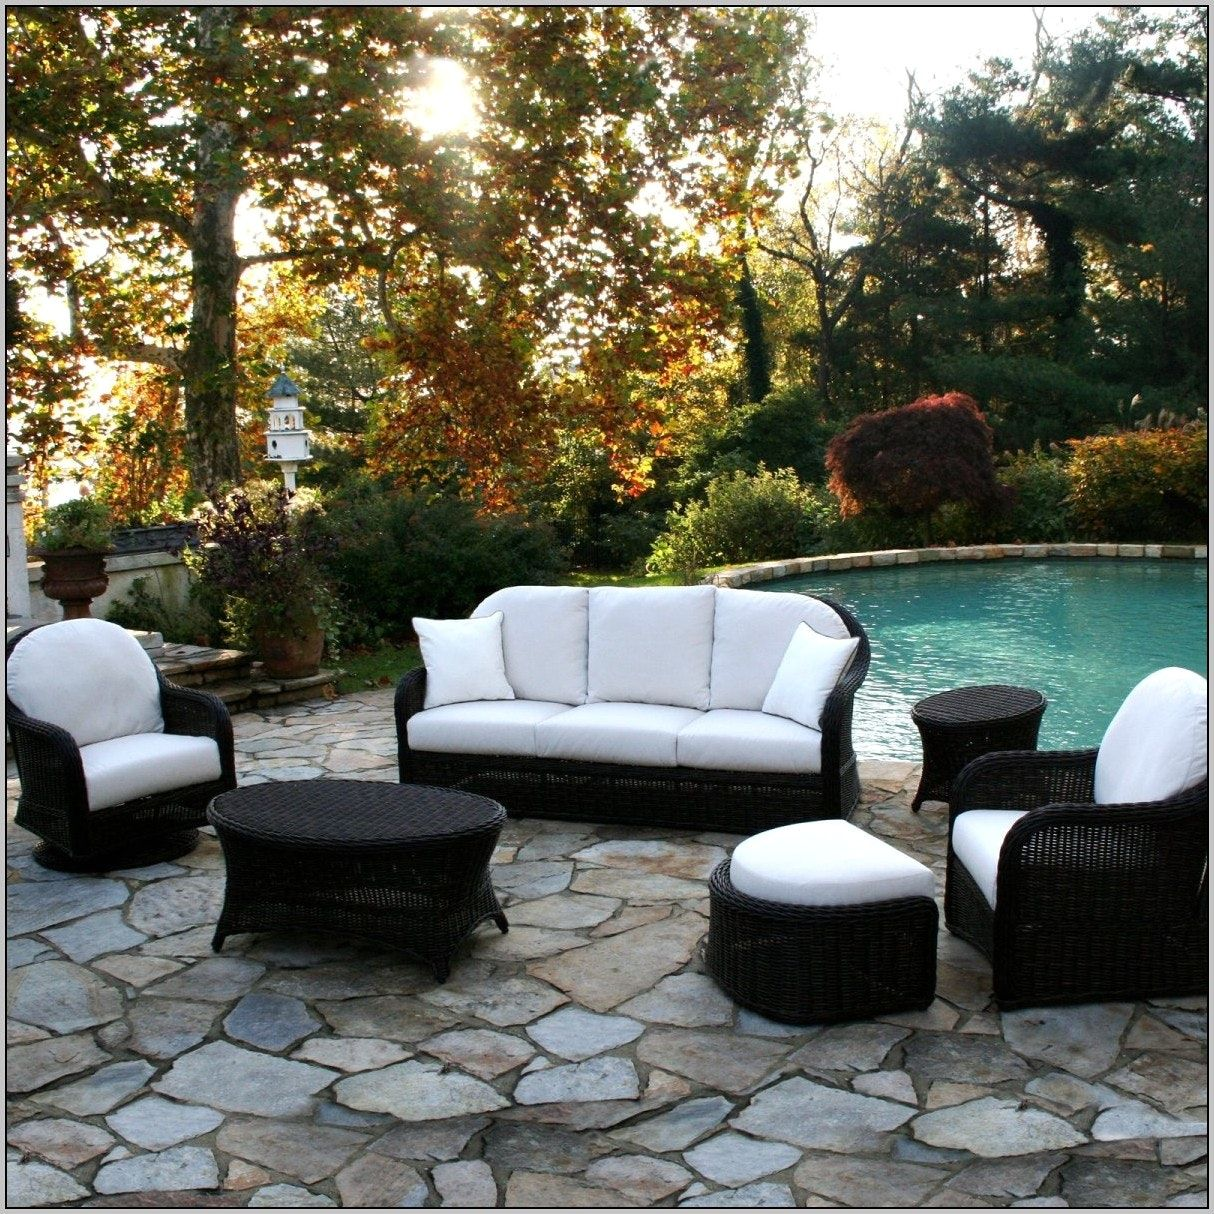 Gentil Used Furniture Jacksonville Beach Fl   Best Cheap Modern Furniture Check  More At Http:/